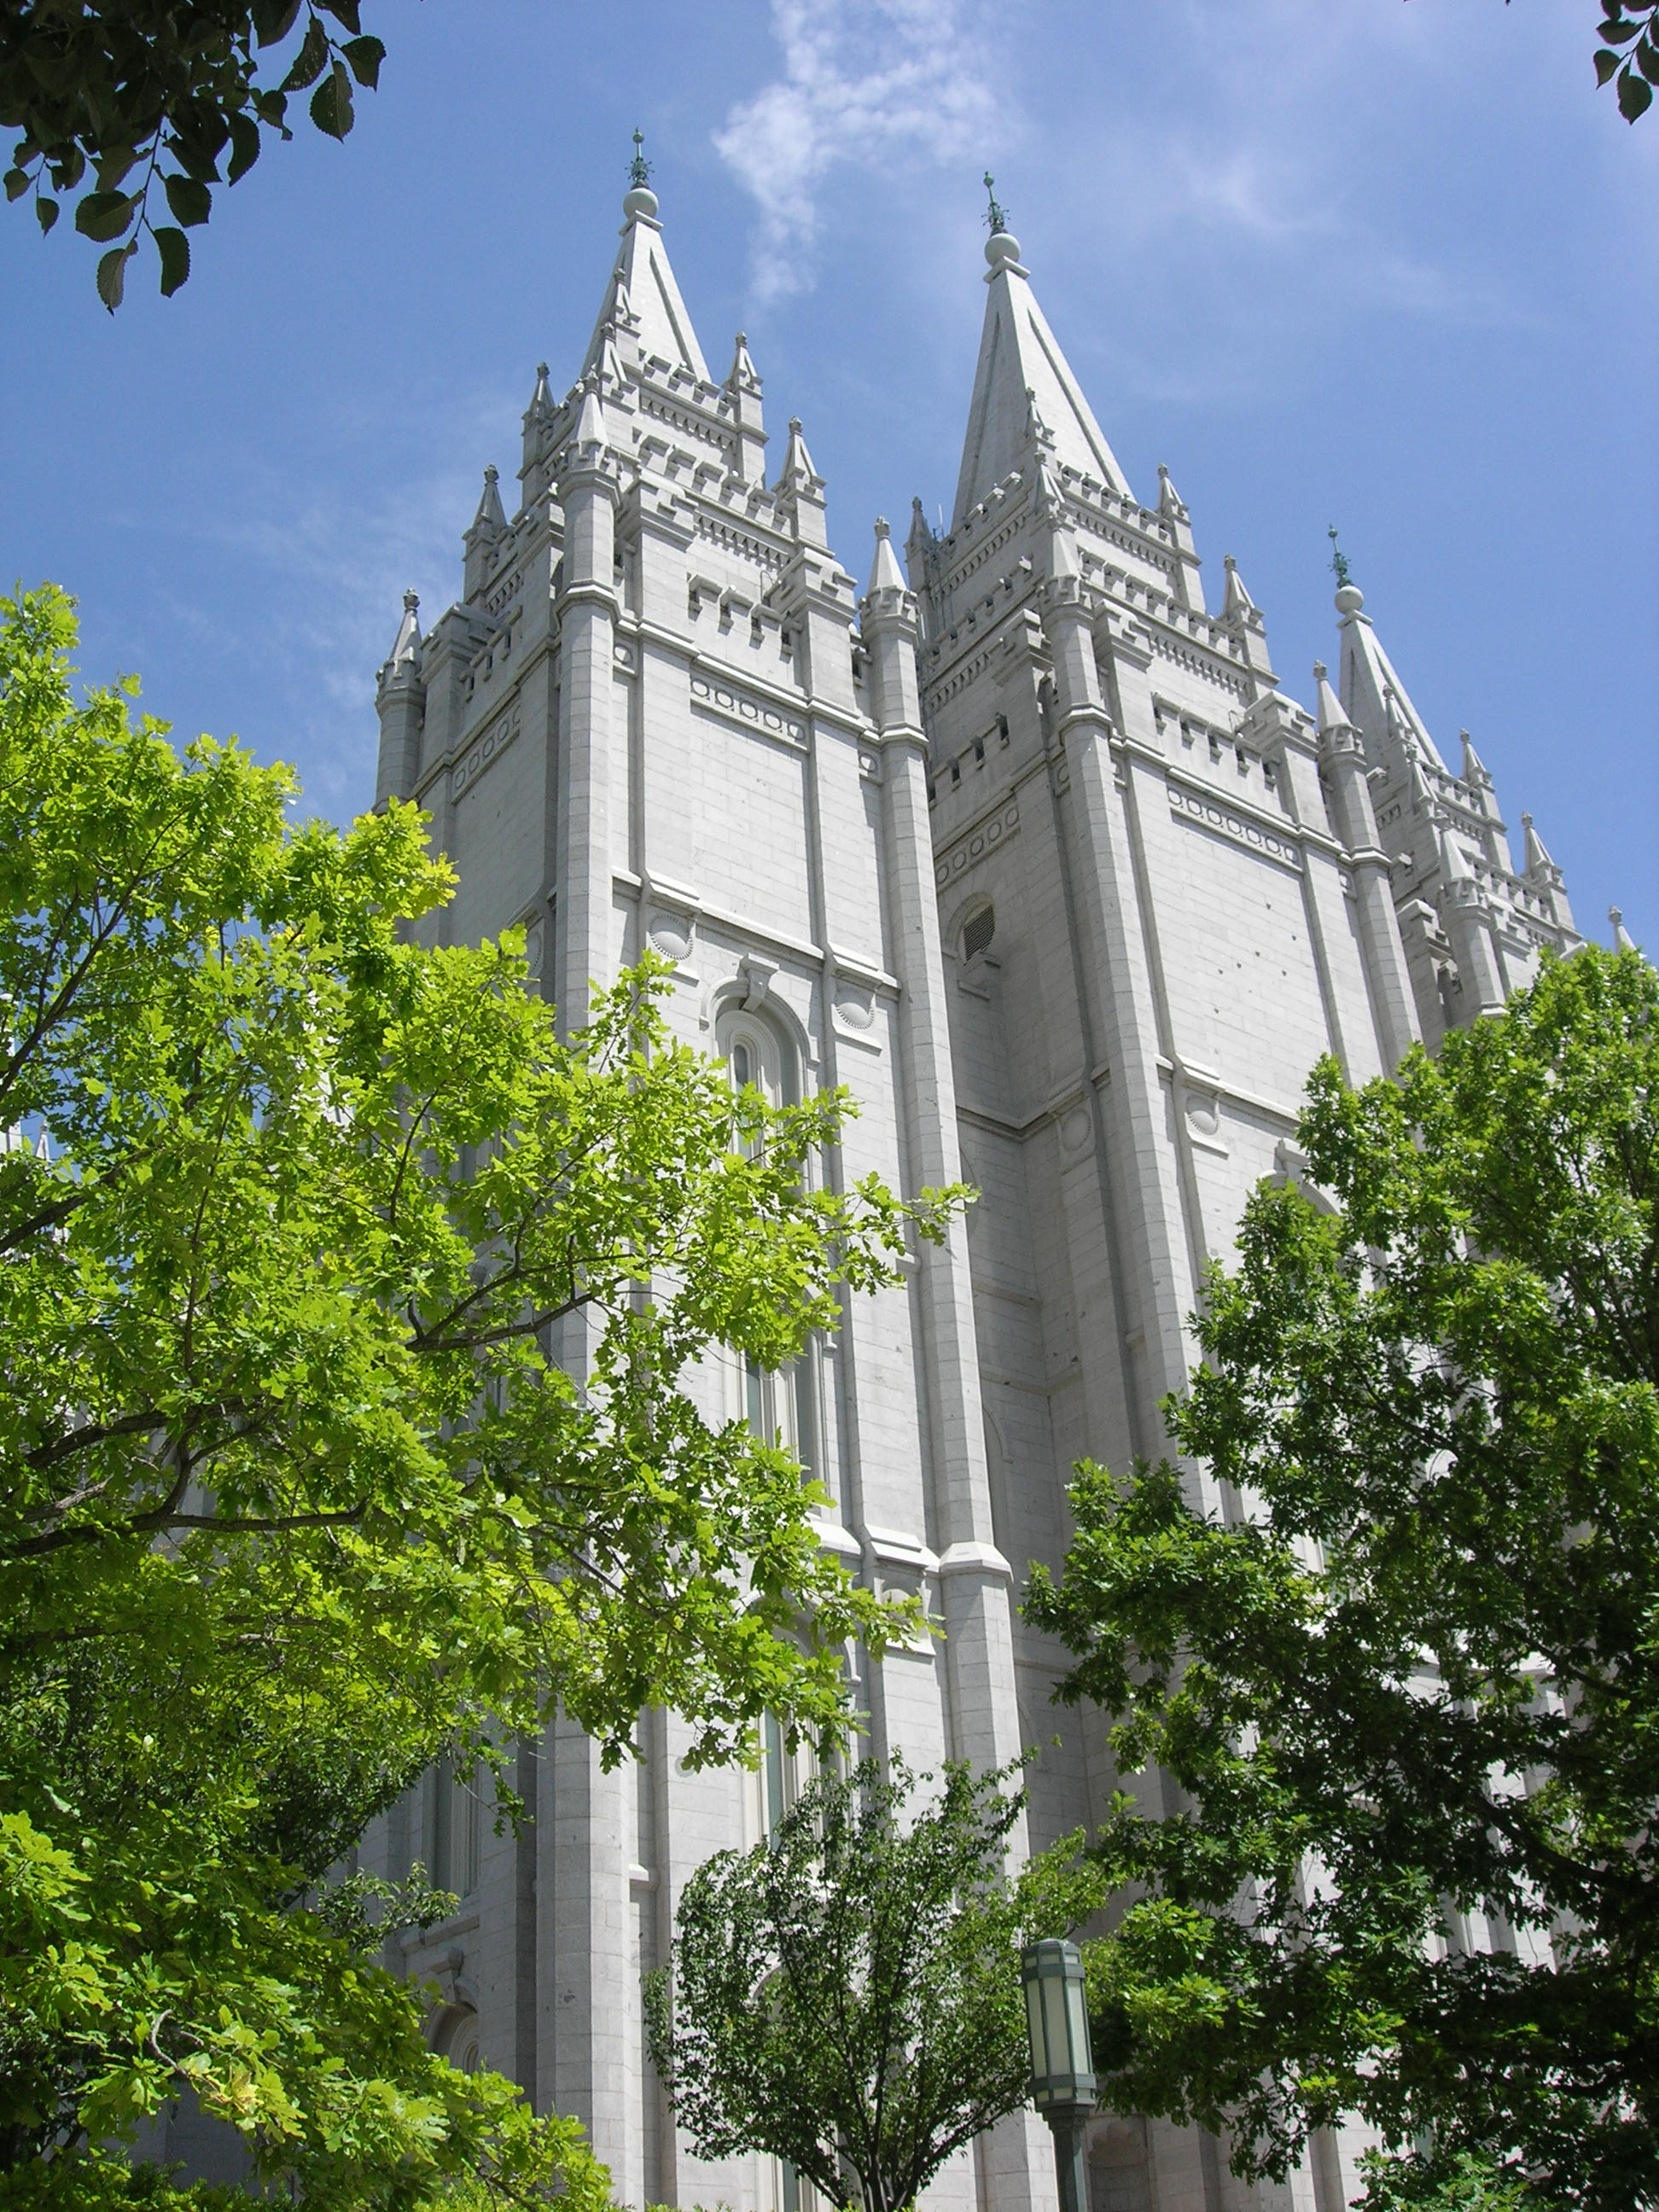 Pictures of the mormon temples